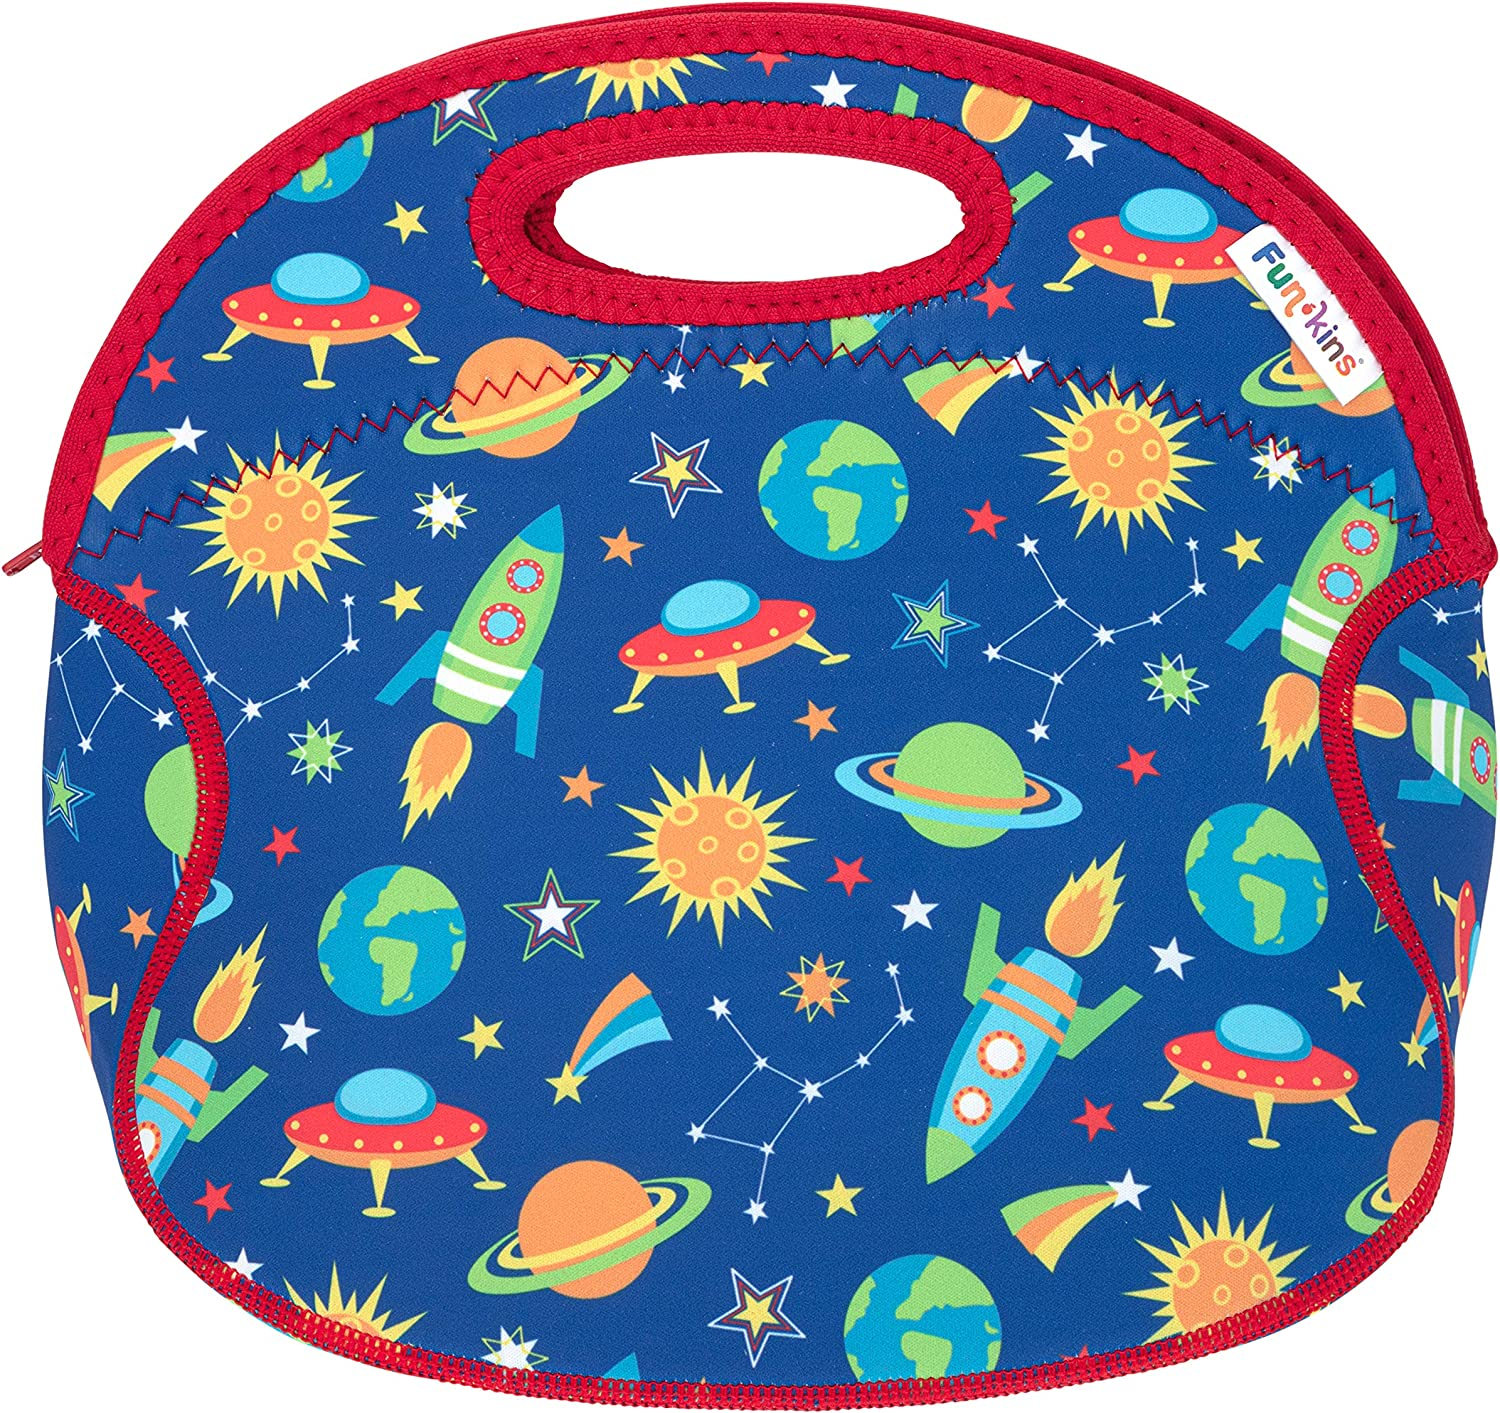 Swiss Navy Dot Spacious Easy to Pack and Clean Durable Teens or Adults Insulated Lunch Bag with Interior Pocket and Name Tag Funkins Fun Lunch Tote for Kids Machine Washable